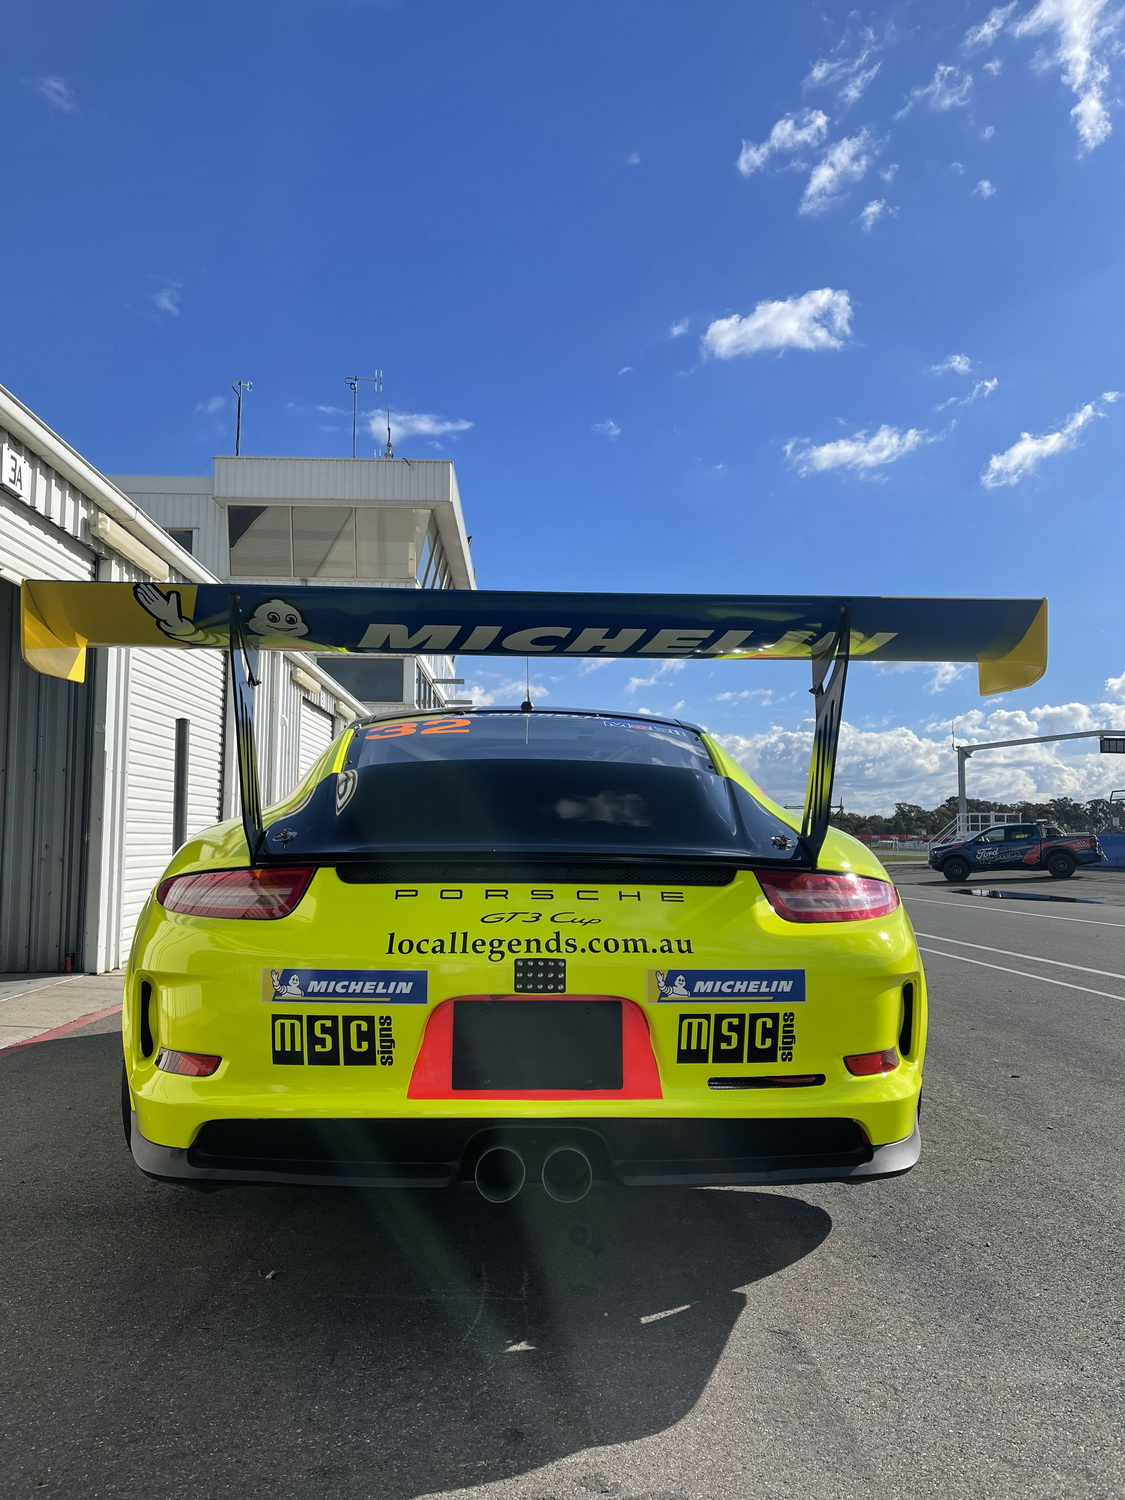 Test run with the Porsche GT3 at Winton. Courtney Prince Motor Sport, 2021.